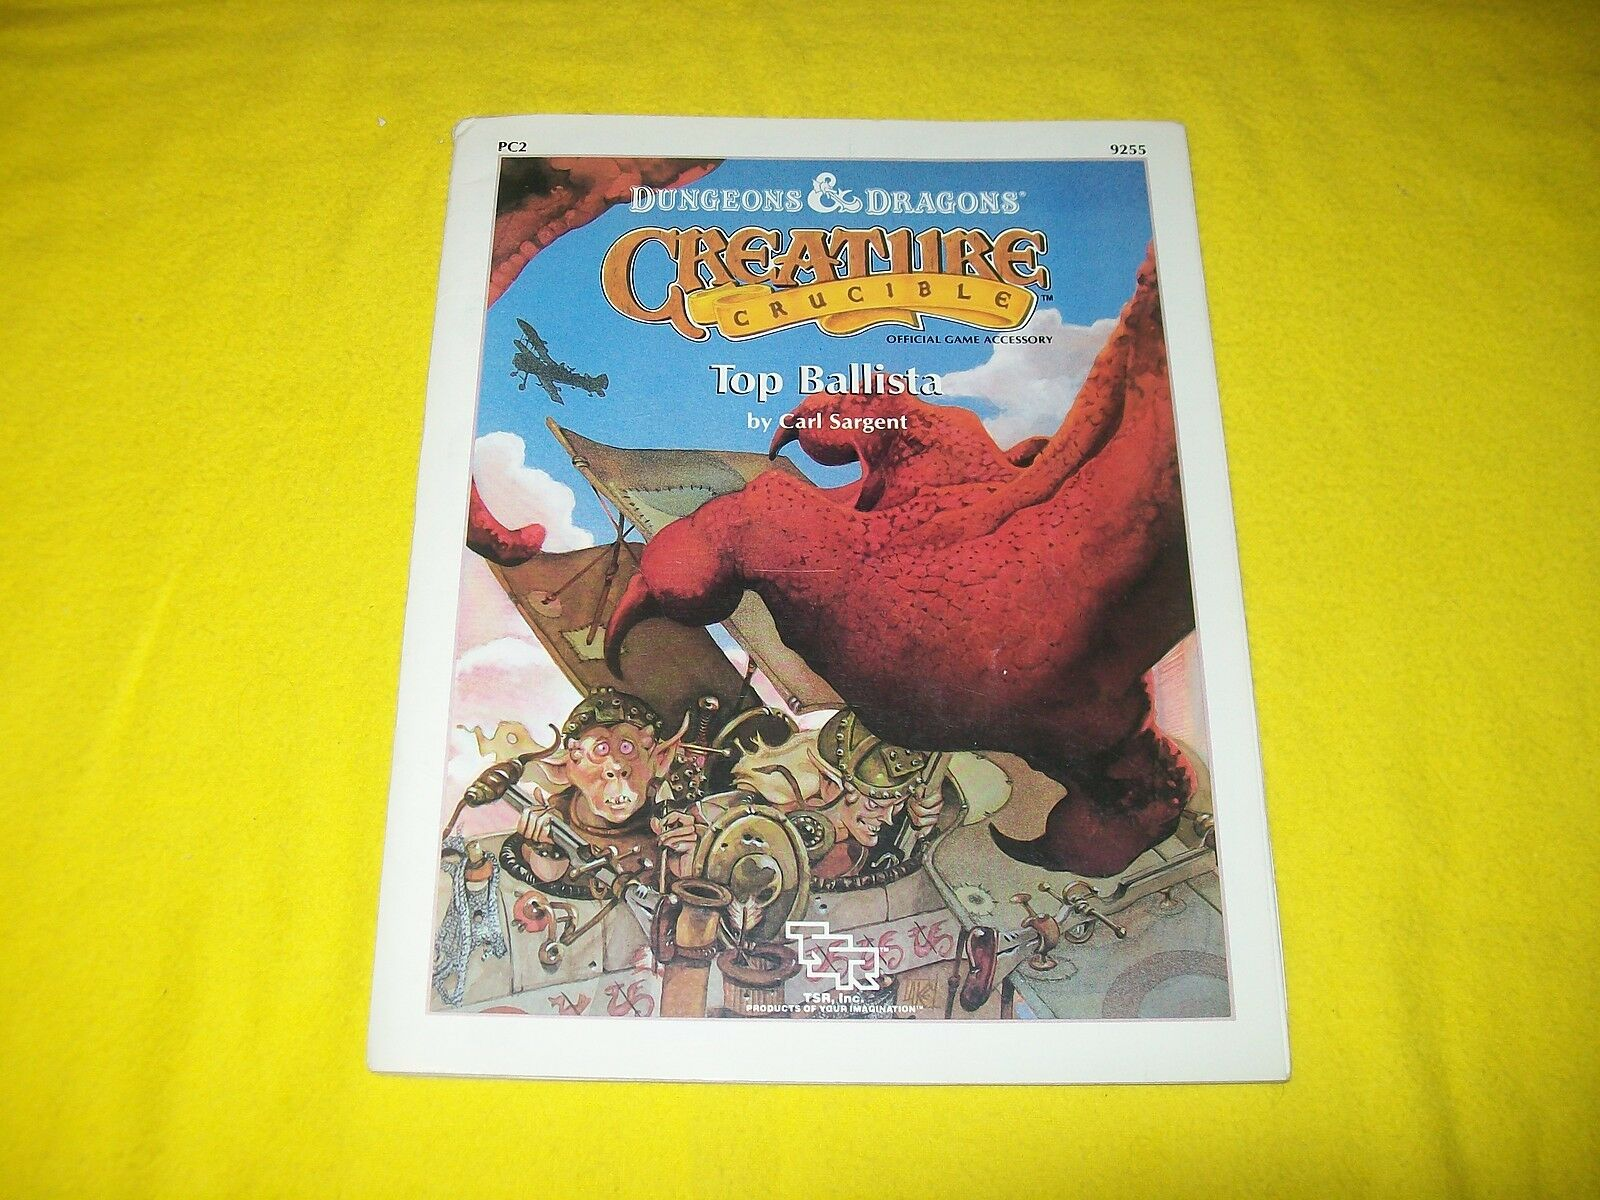 PC2 TOP BALISTA DUNGEONS & DRAGONER CREATURE CRUCIBL TSR 9255 - 2 MED MAP